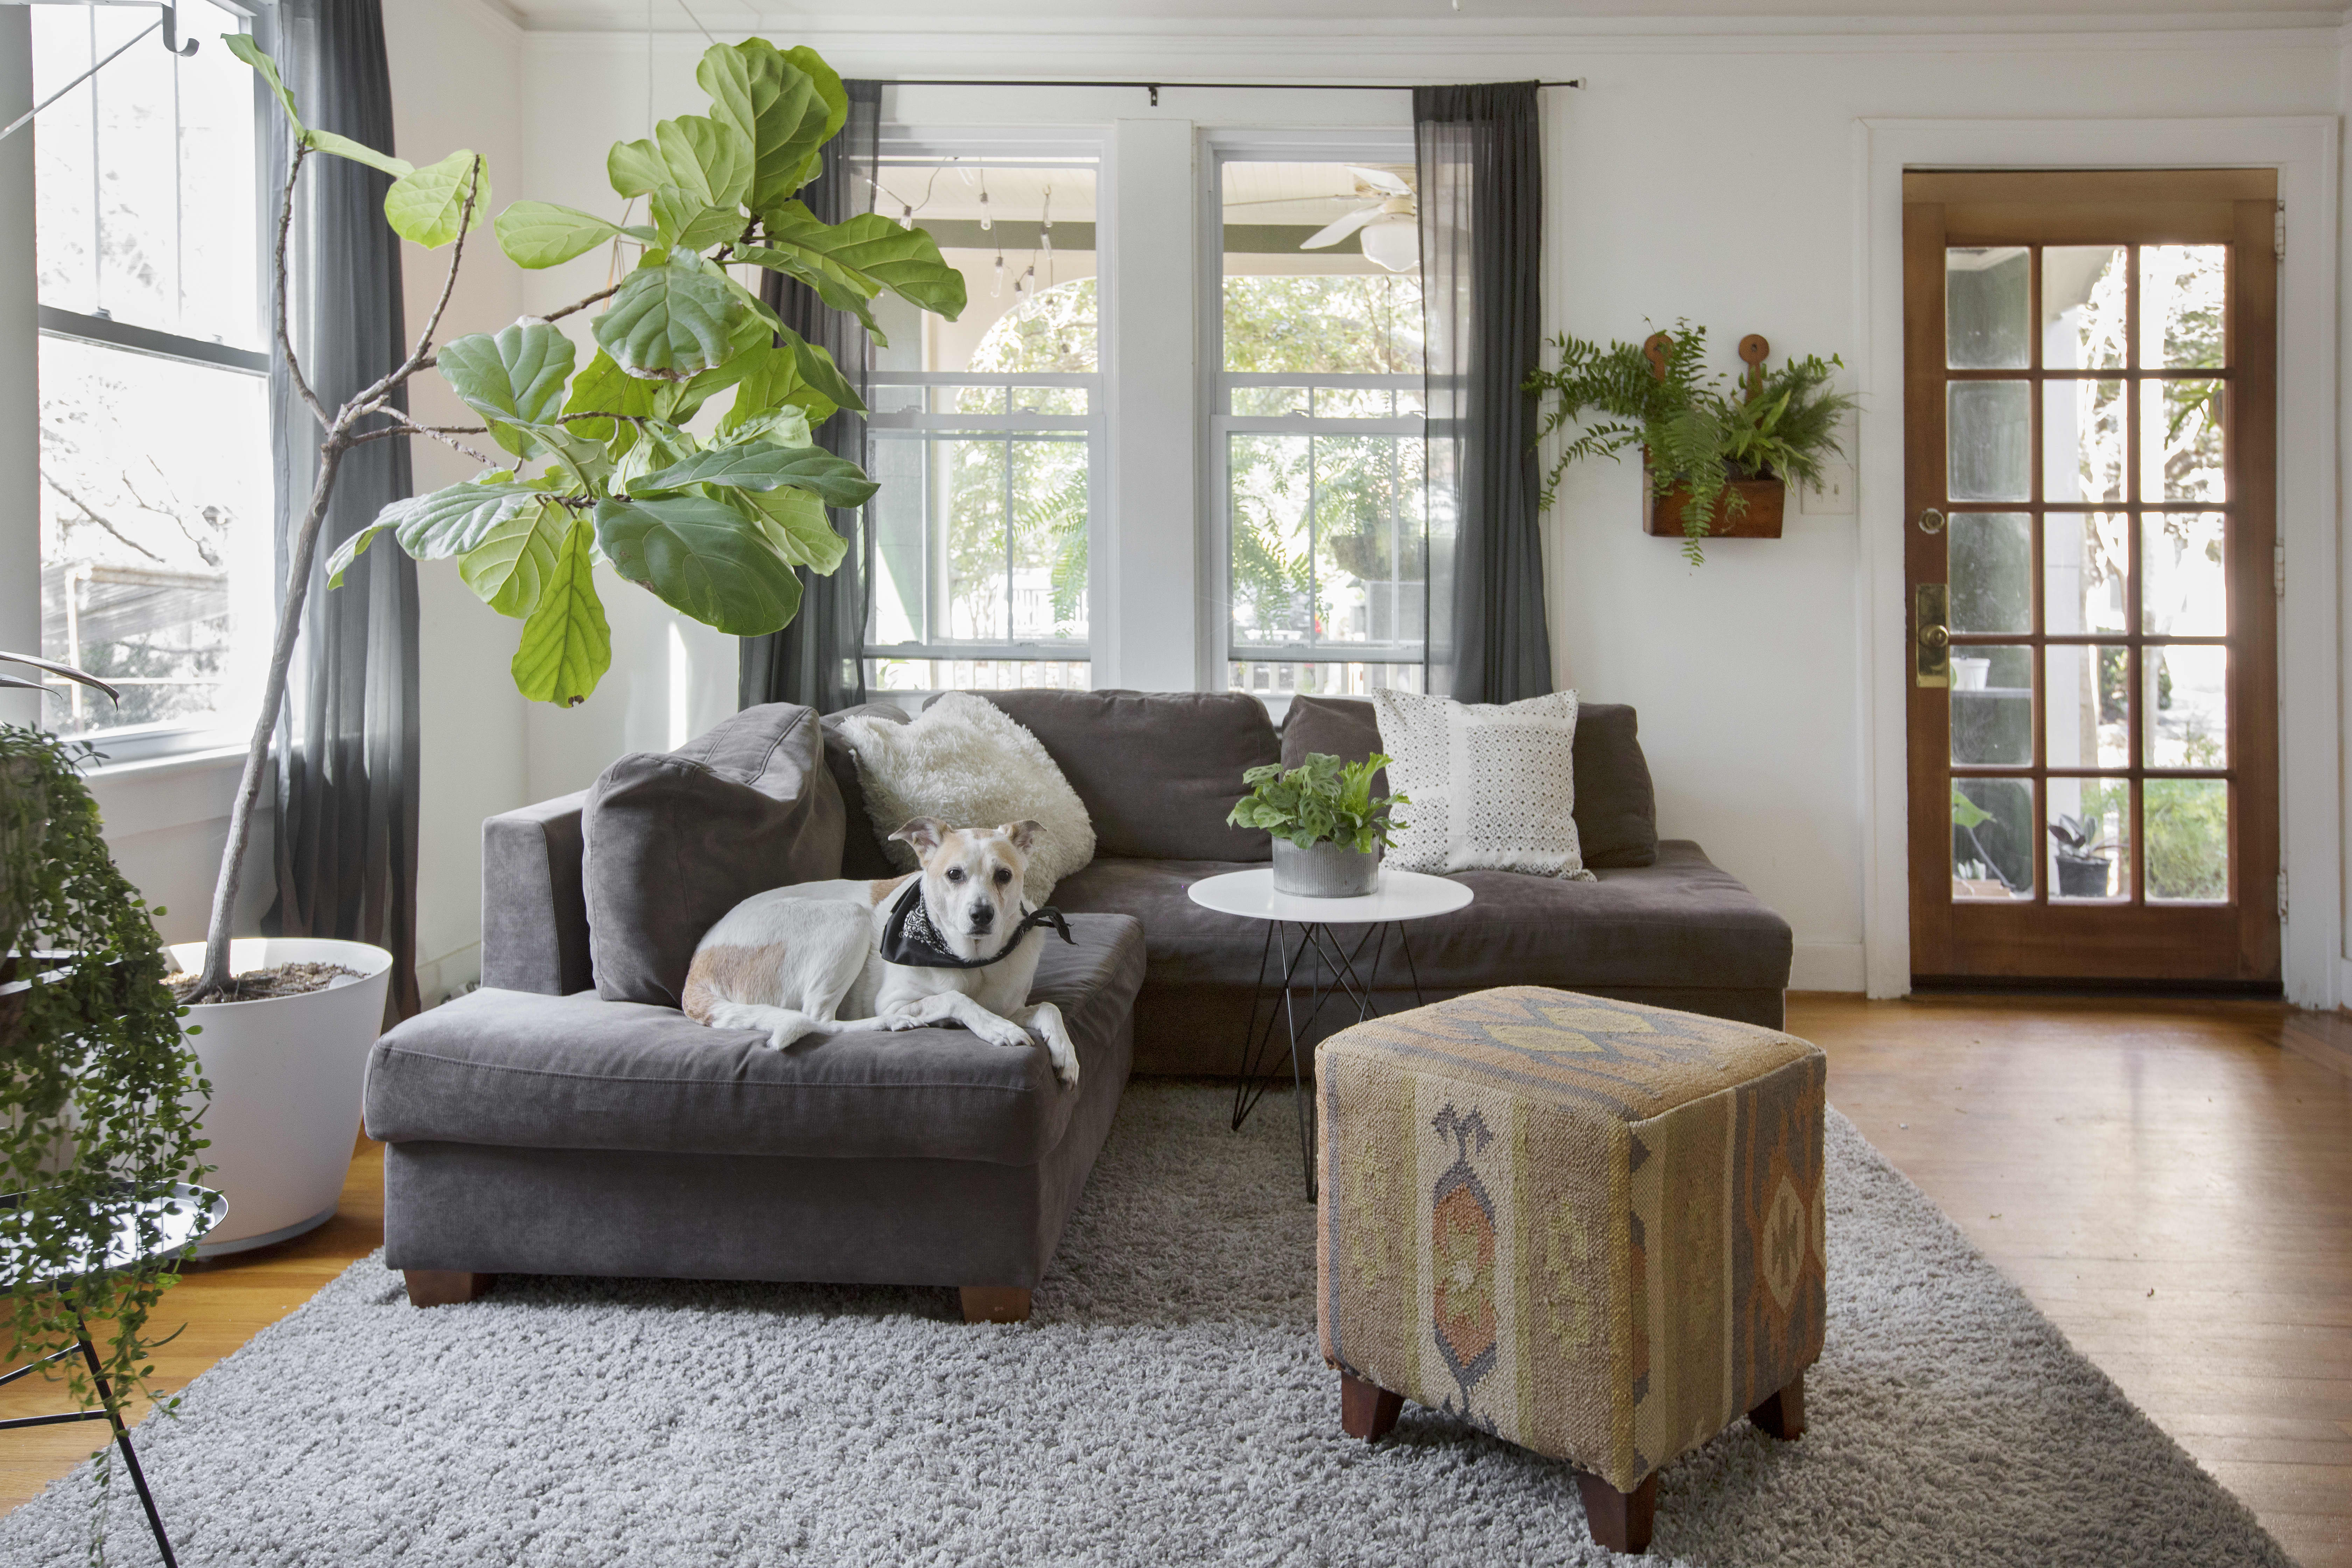 Hægur Owner's Plant-Filled Charleston Home | Apartment Therapy